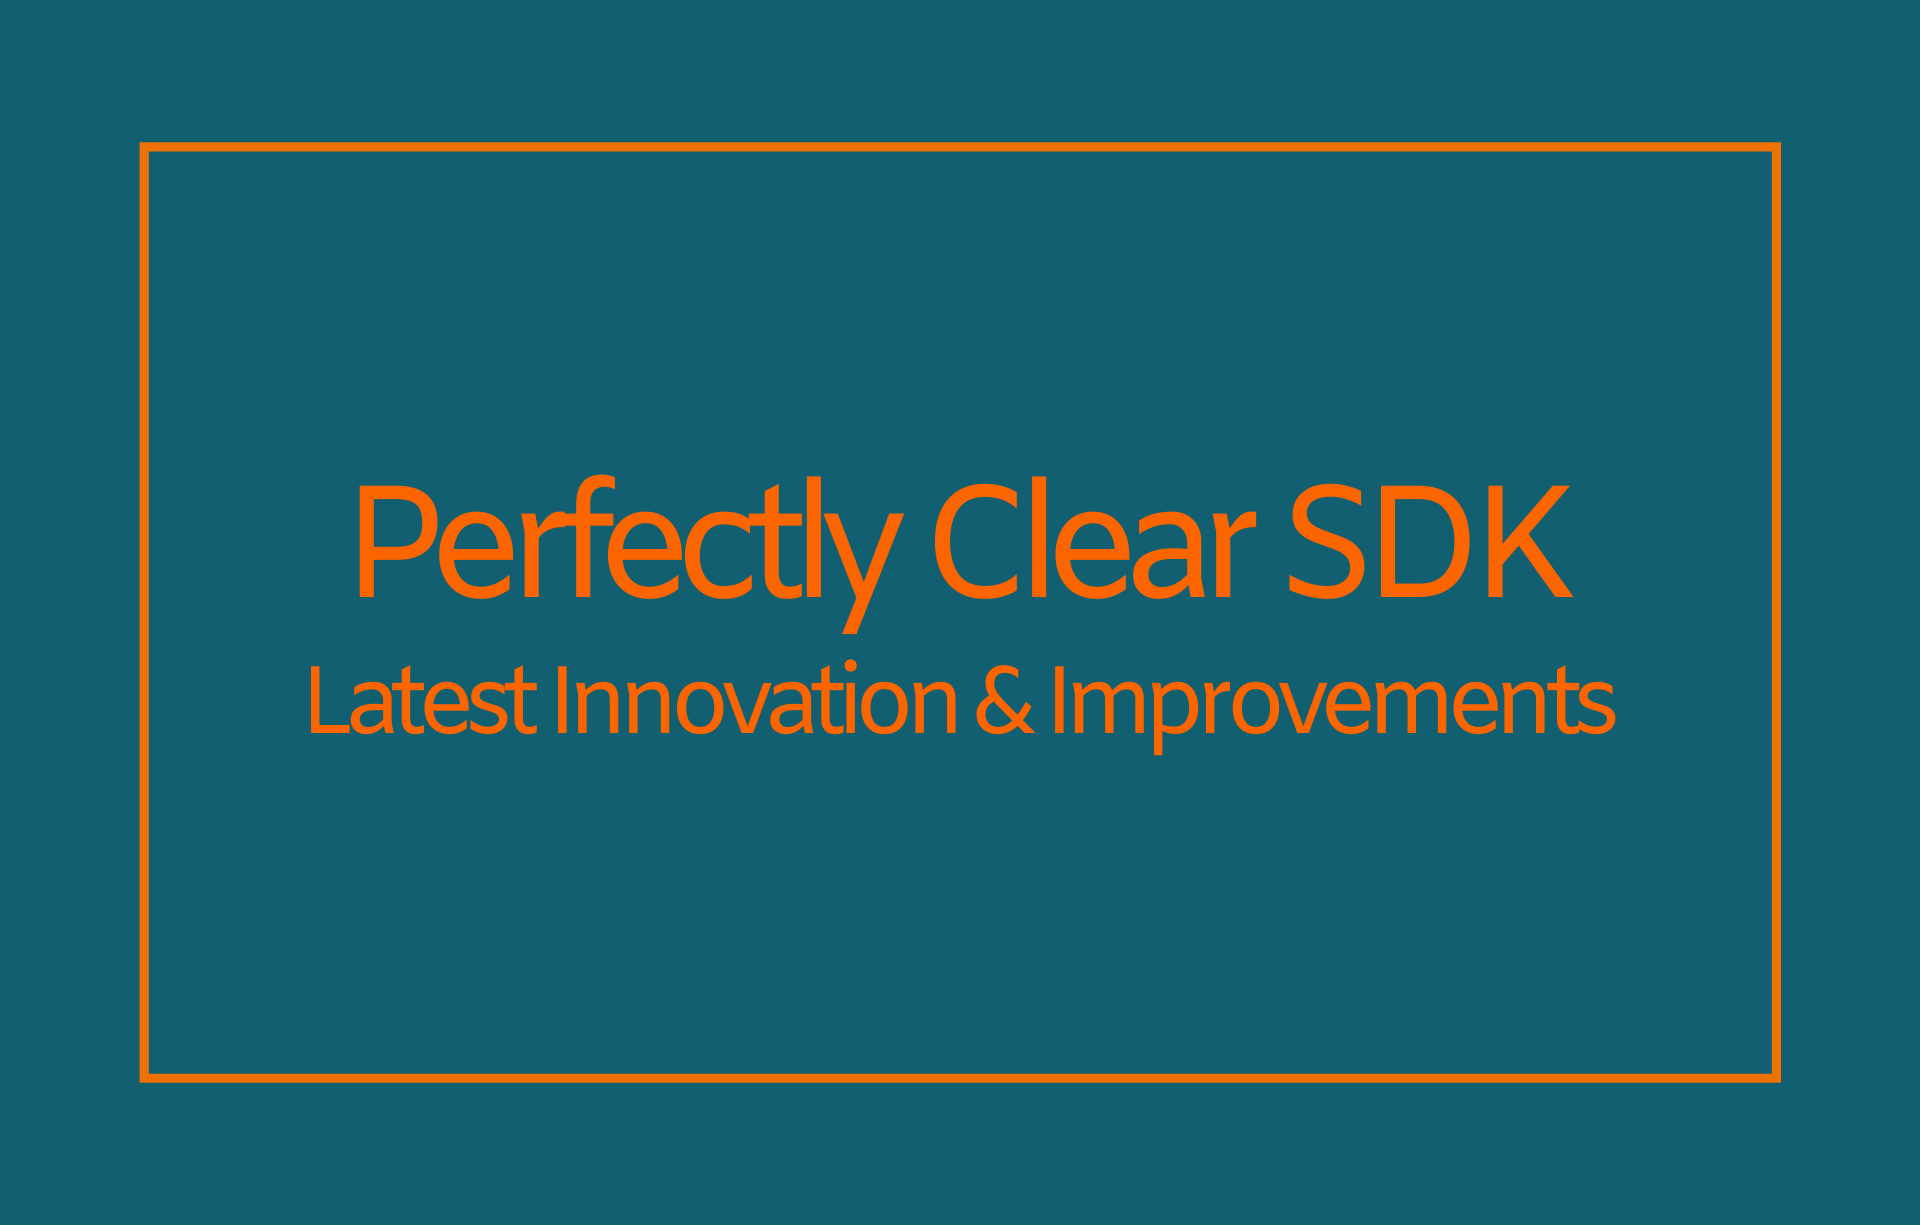 perfectly clear sdk latest innovation and improvements